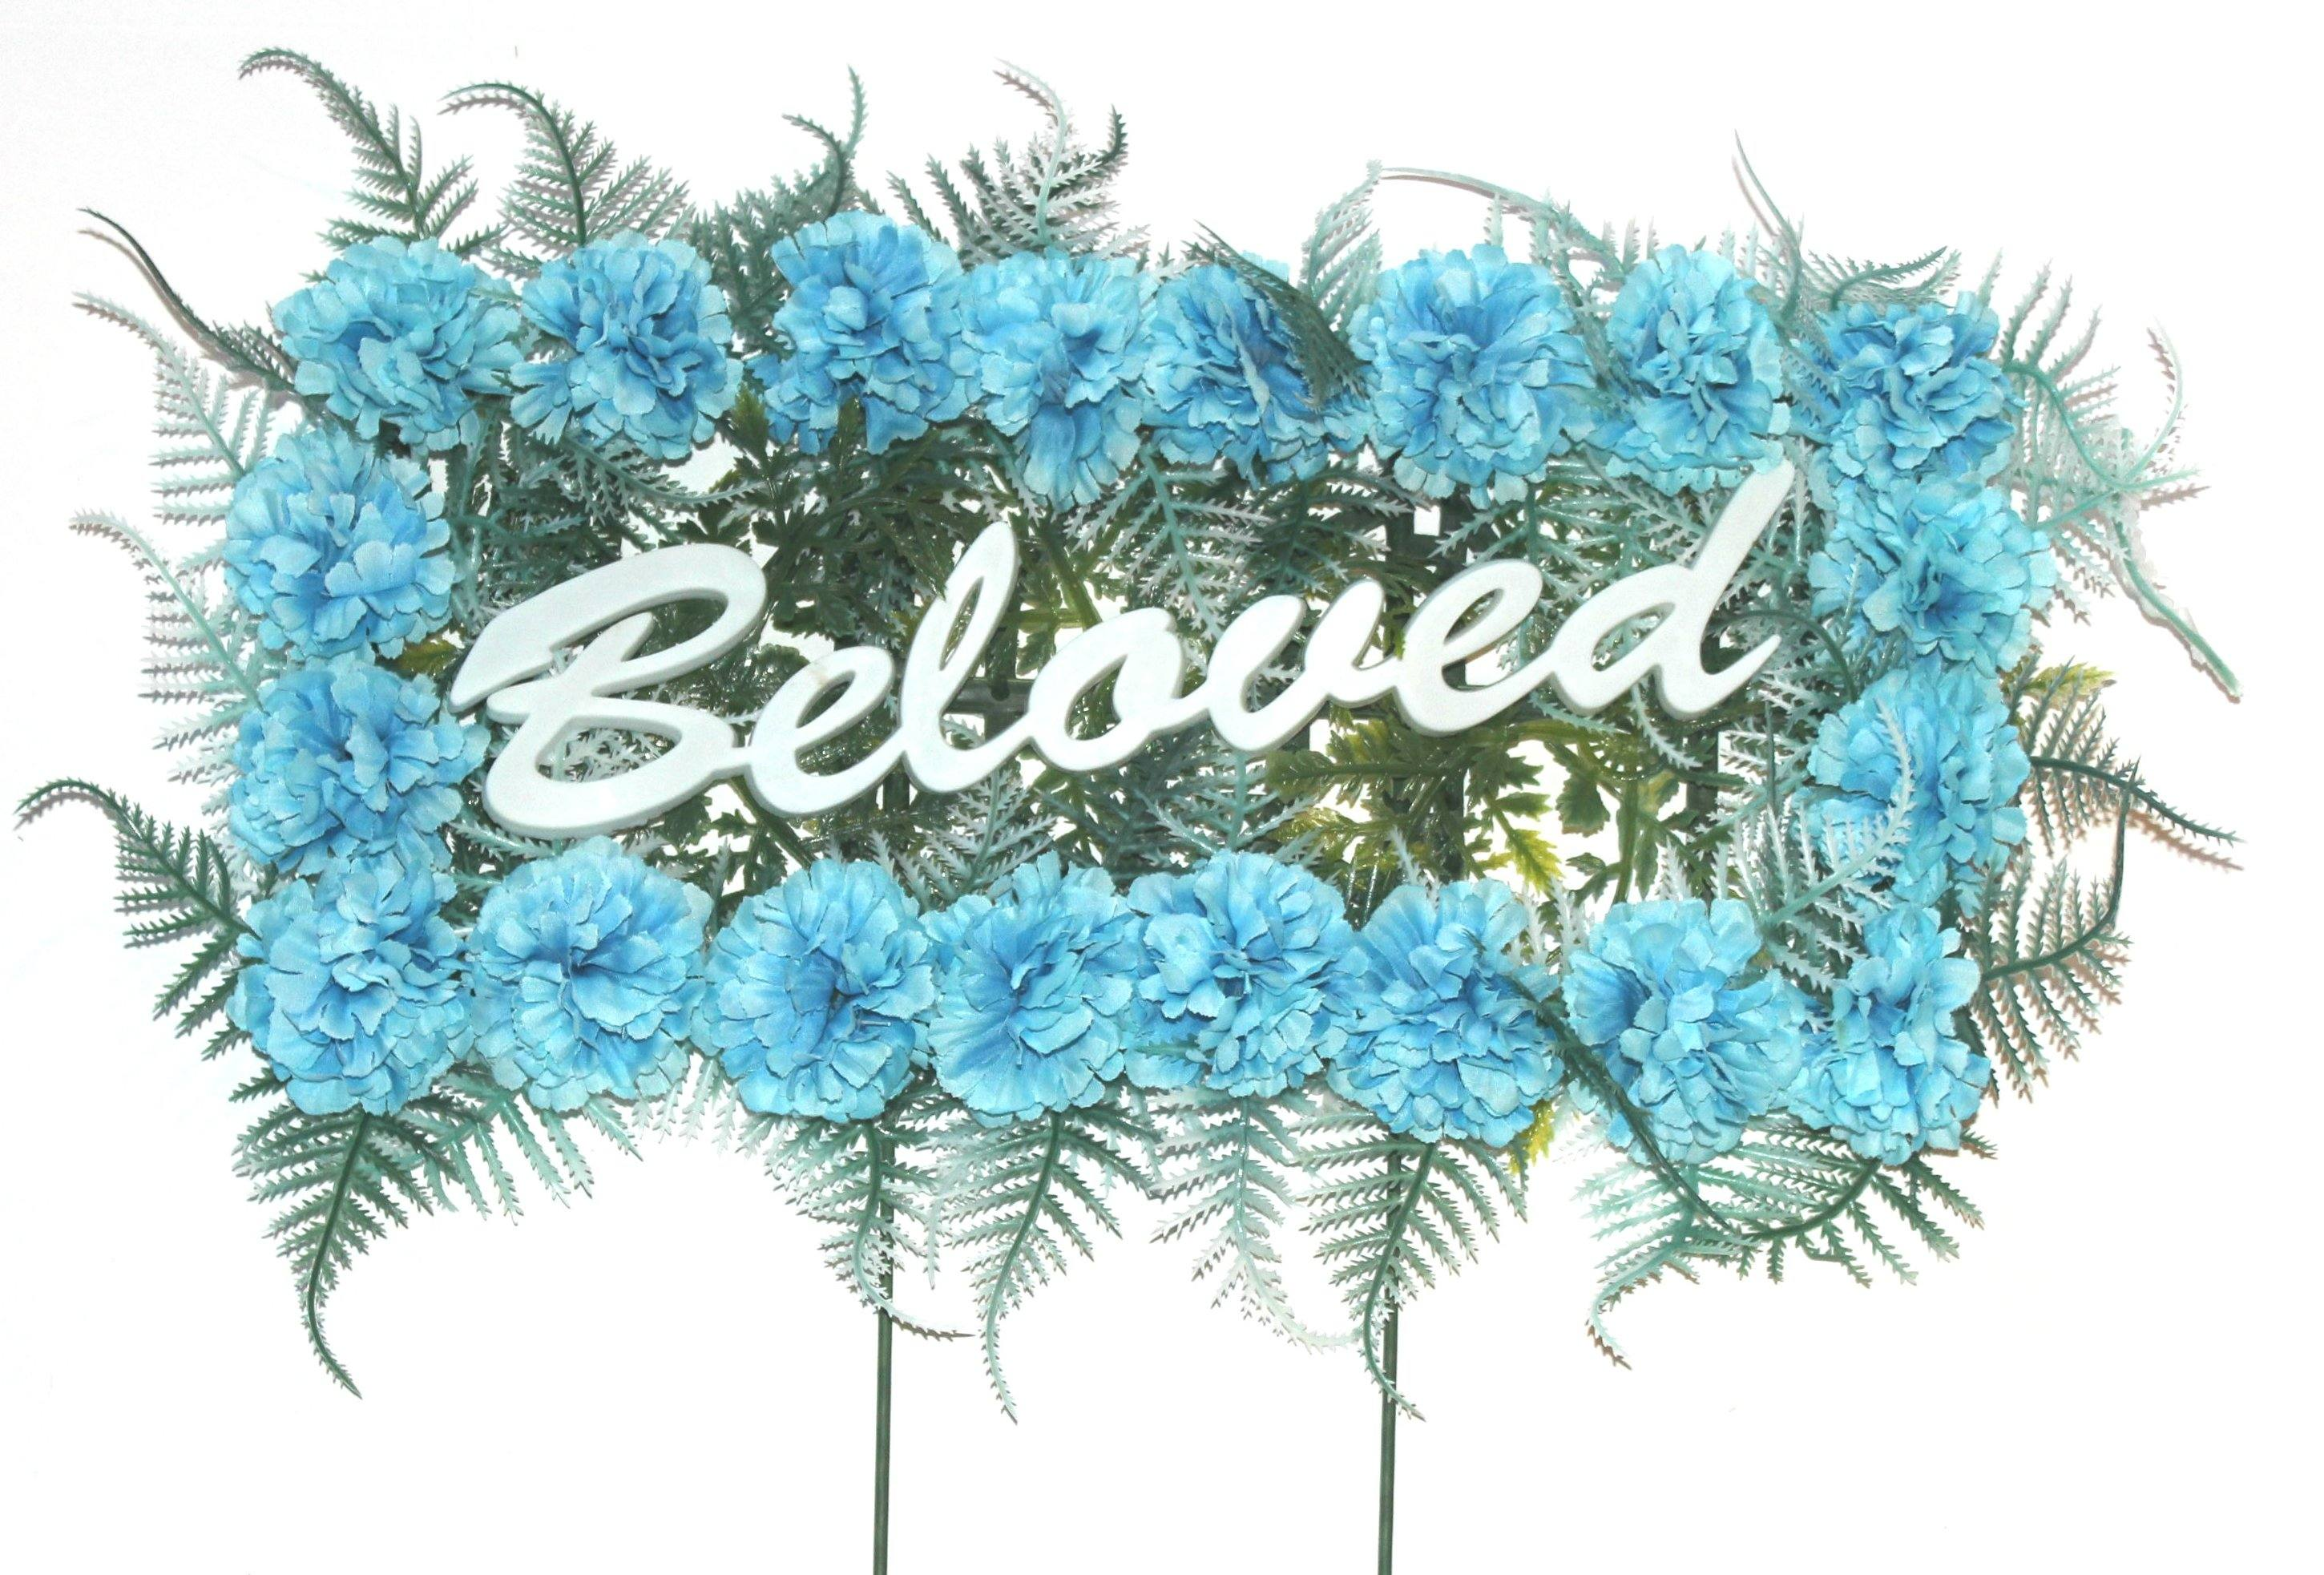 Beloved Pillow With Blue Silk Flowers 18 Inches